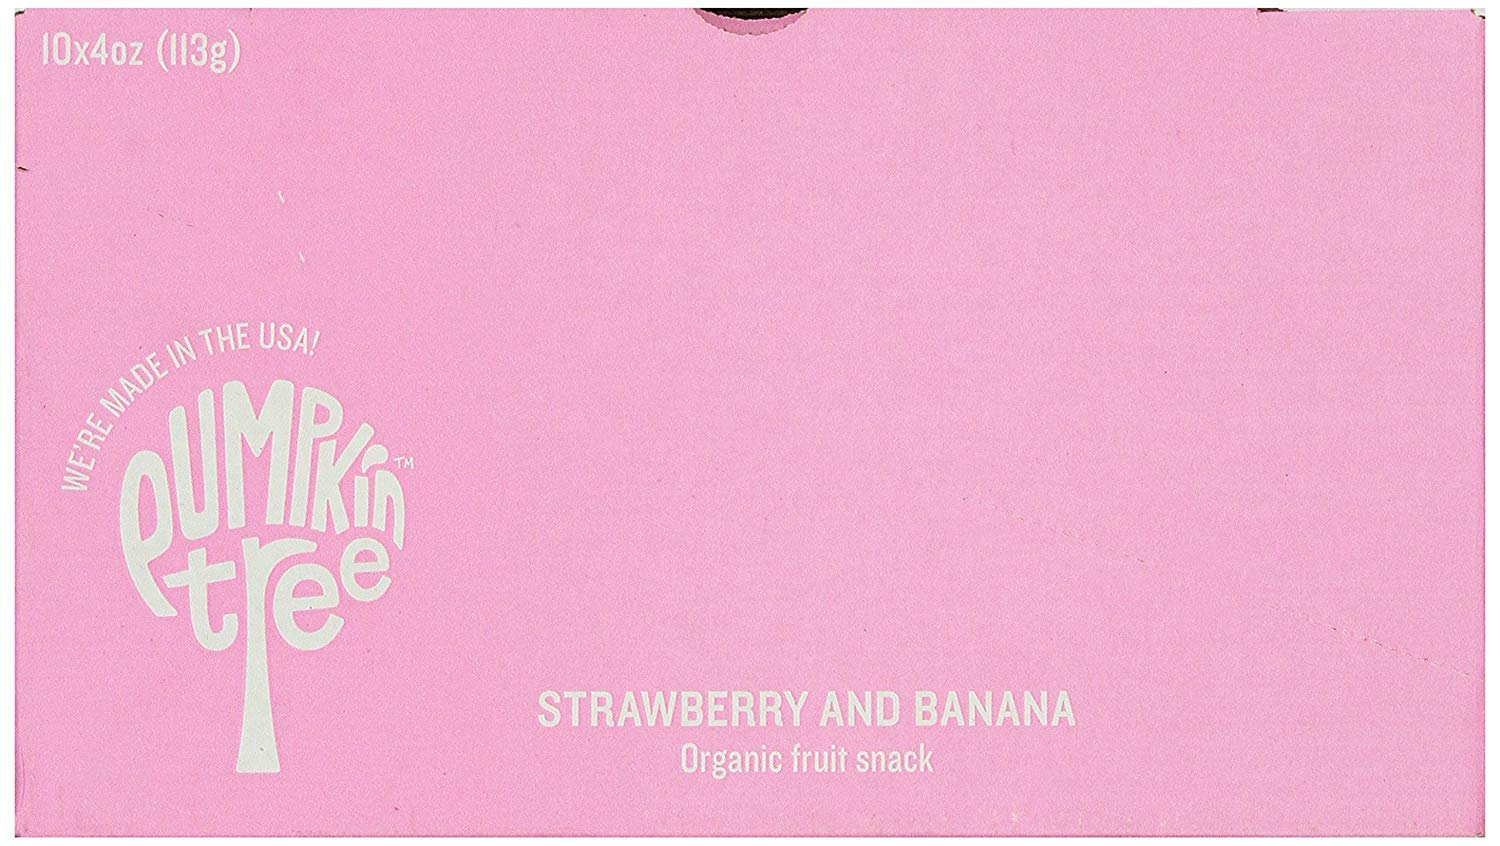 Peter Rabbit Organics Strawberry and Banana 100% Pure Fruit Snack, 4 Ounces Squeeze Pouch, (Pack of 18) (Pack of 18) by Peter Rabbit (Image #4)